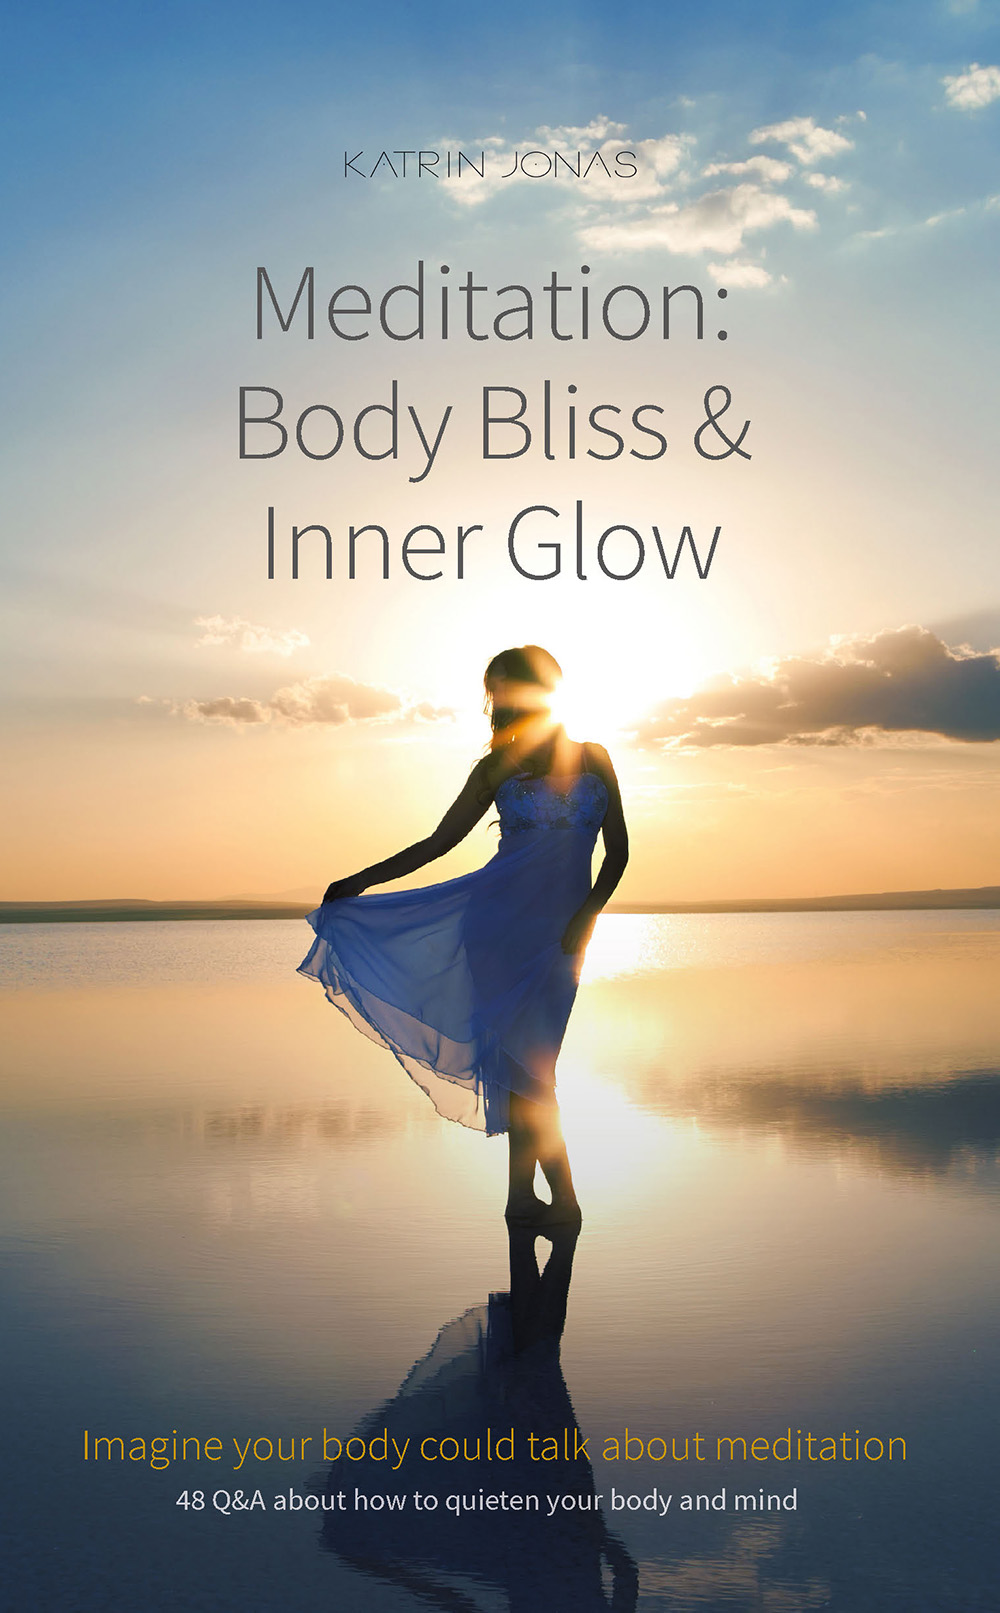 Meditation: Body Bliss & Inner Glow